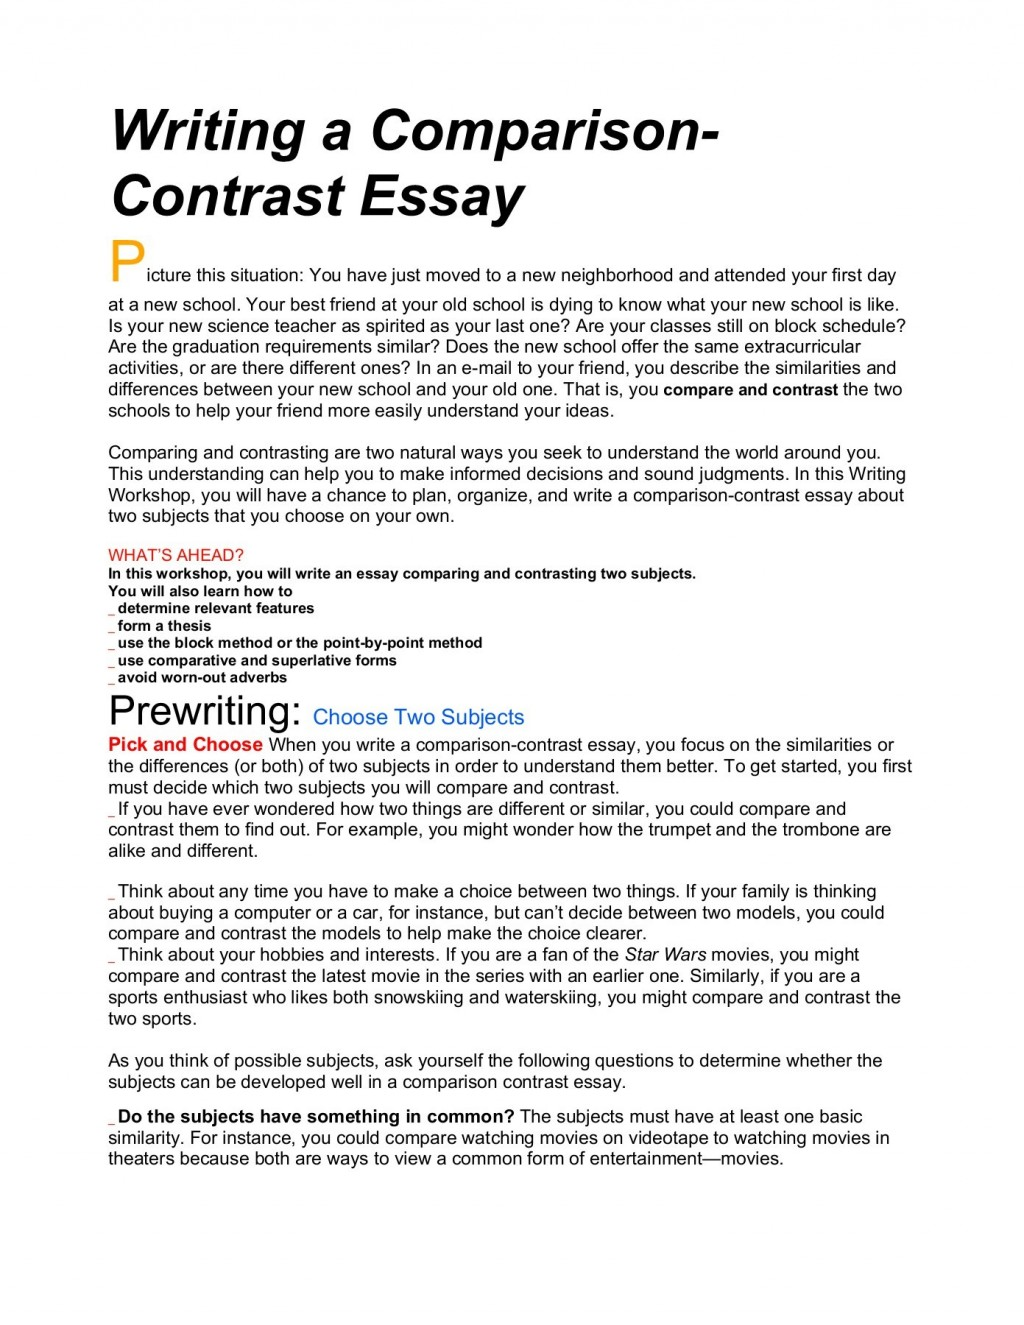 003 Essay Example How To Write Comparison And Unforgettable A Contrast An Introduction Conclusion For Compare Middle School Thesis Large